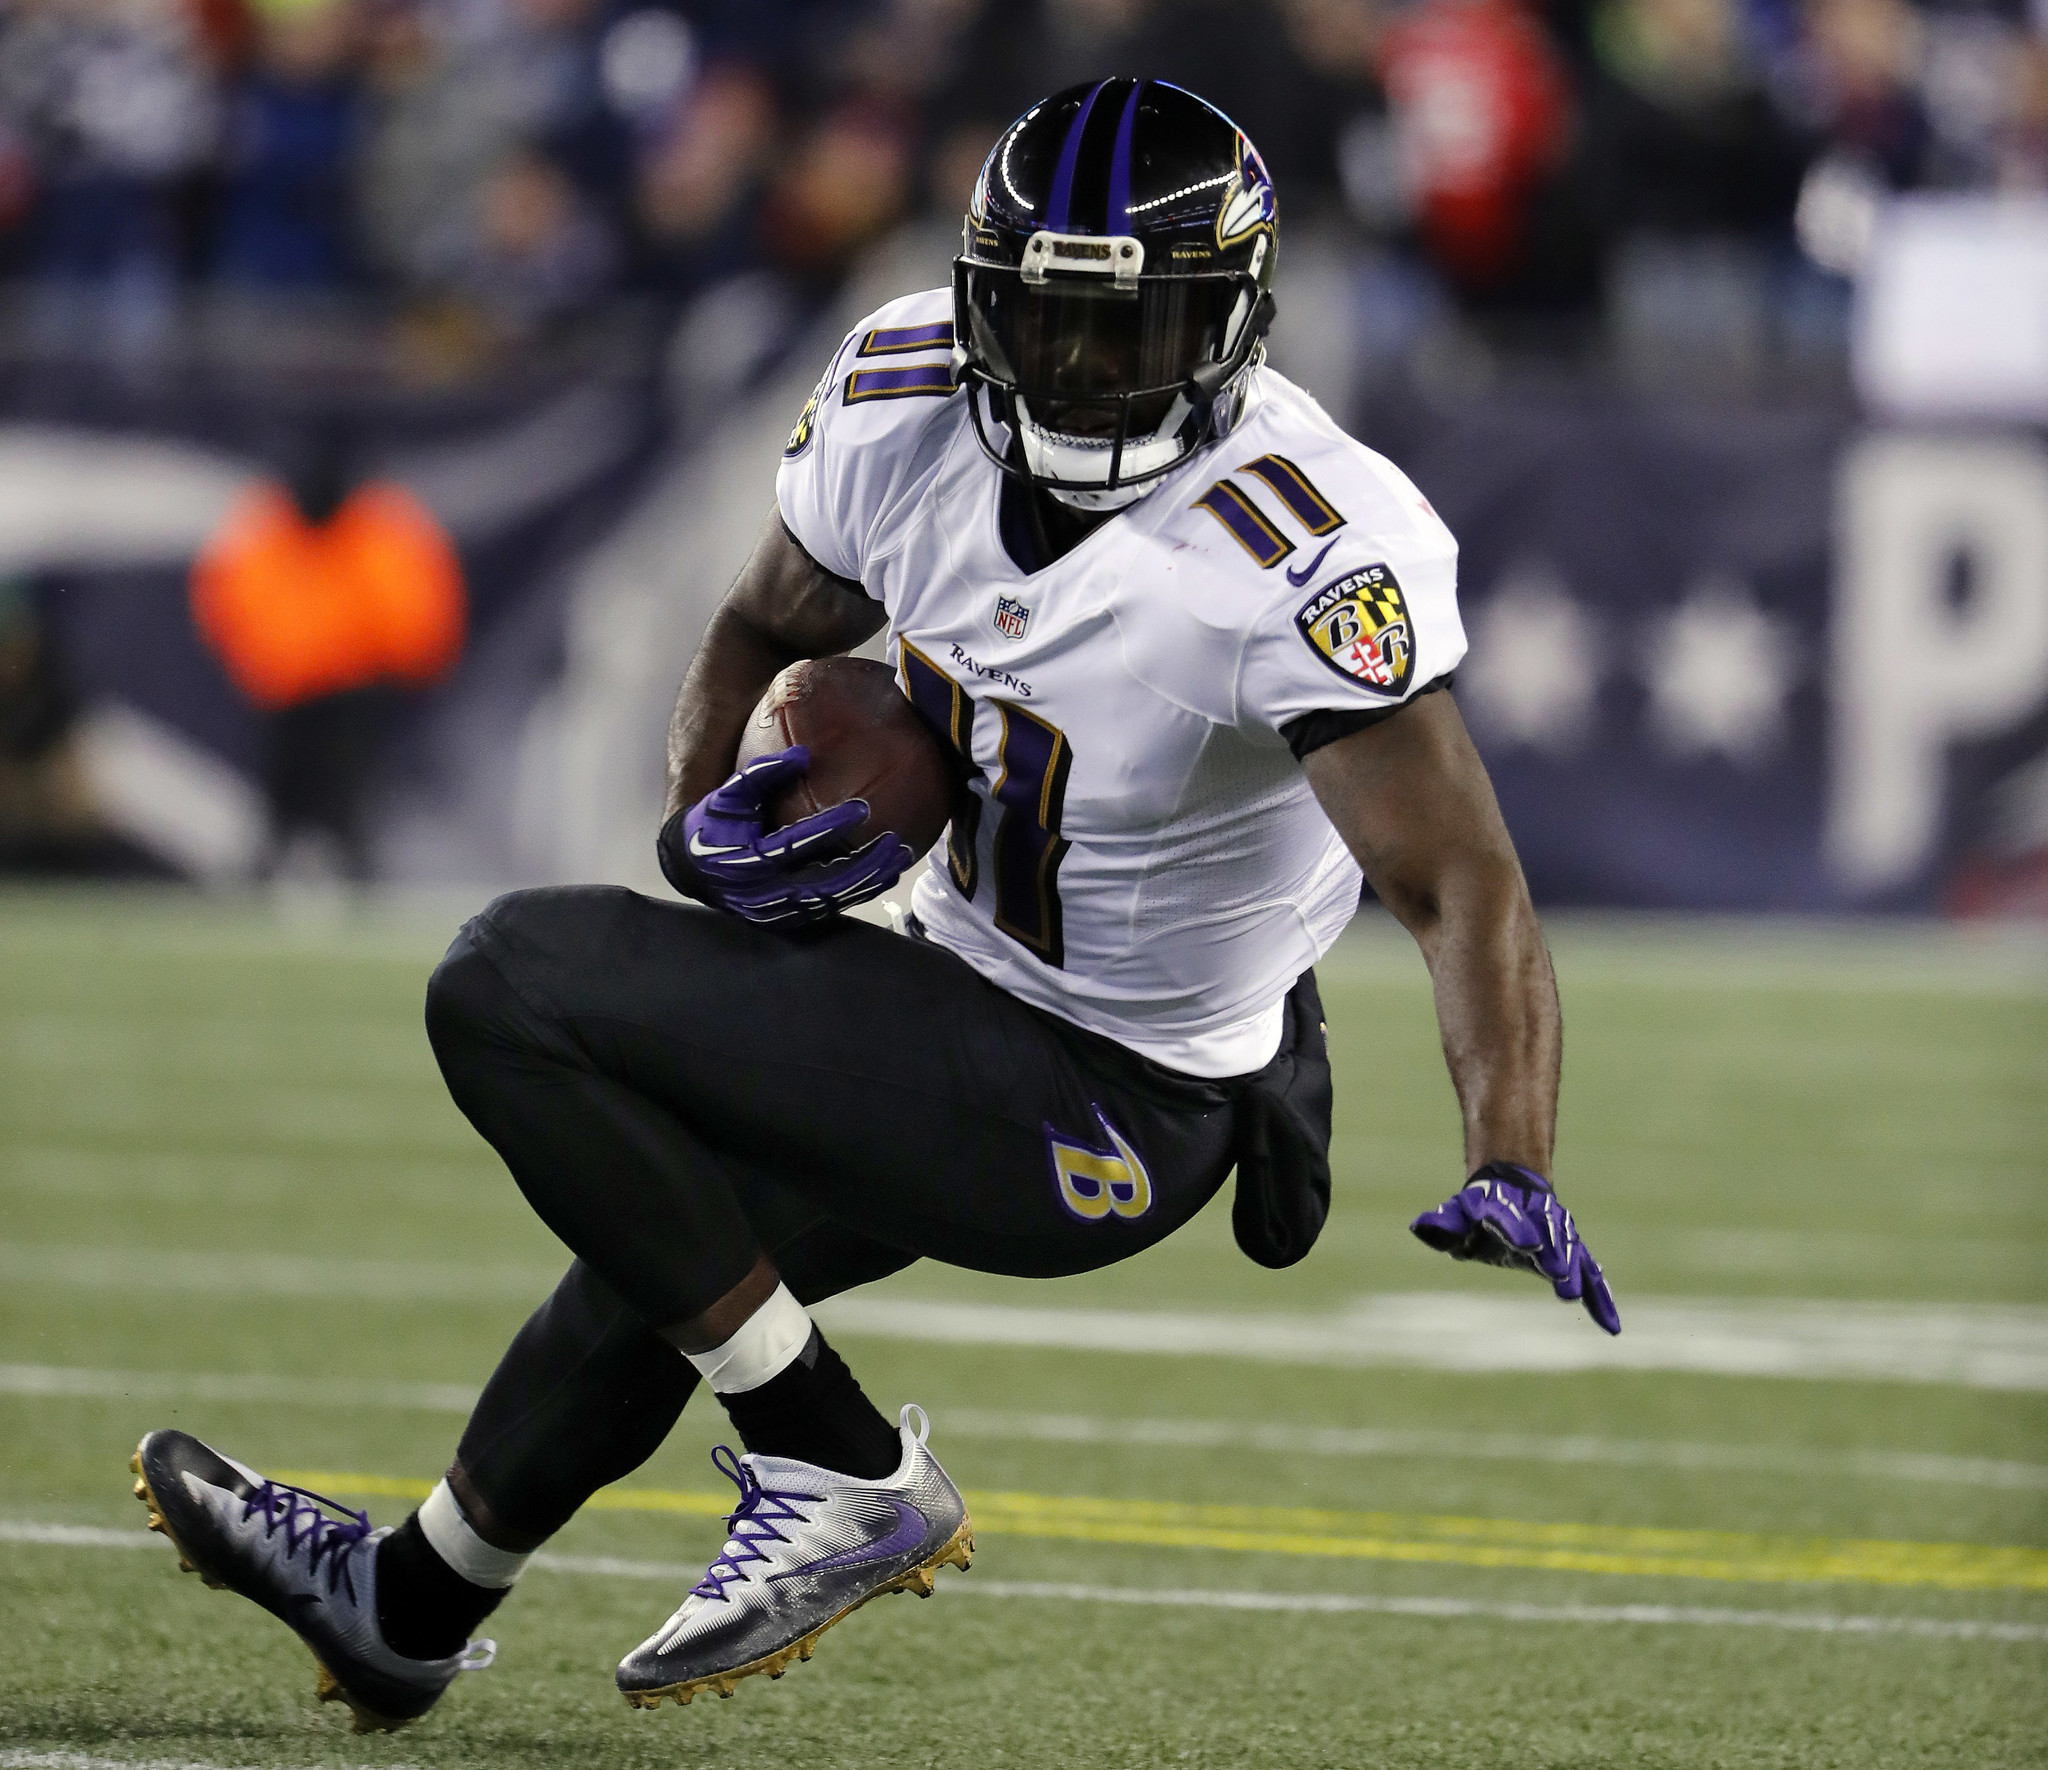 Bal-wide-receiver-kamar-aiken-leaves-ravens-signs-with-colts-20170321